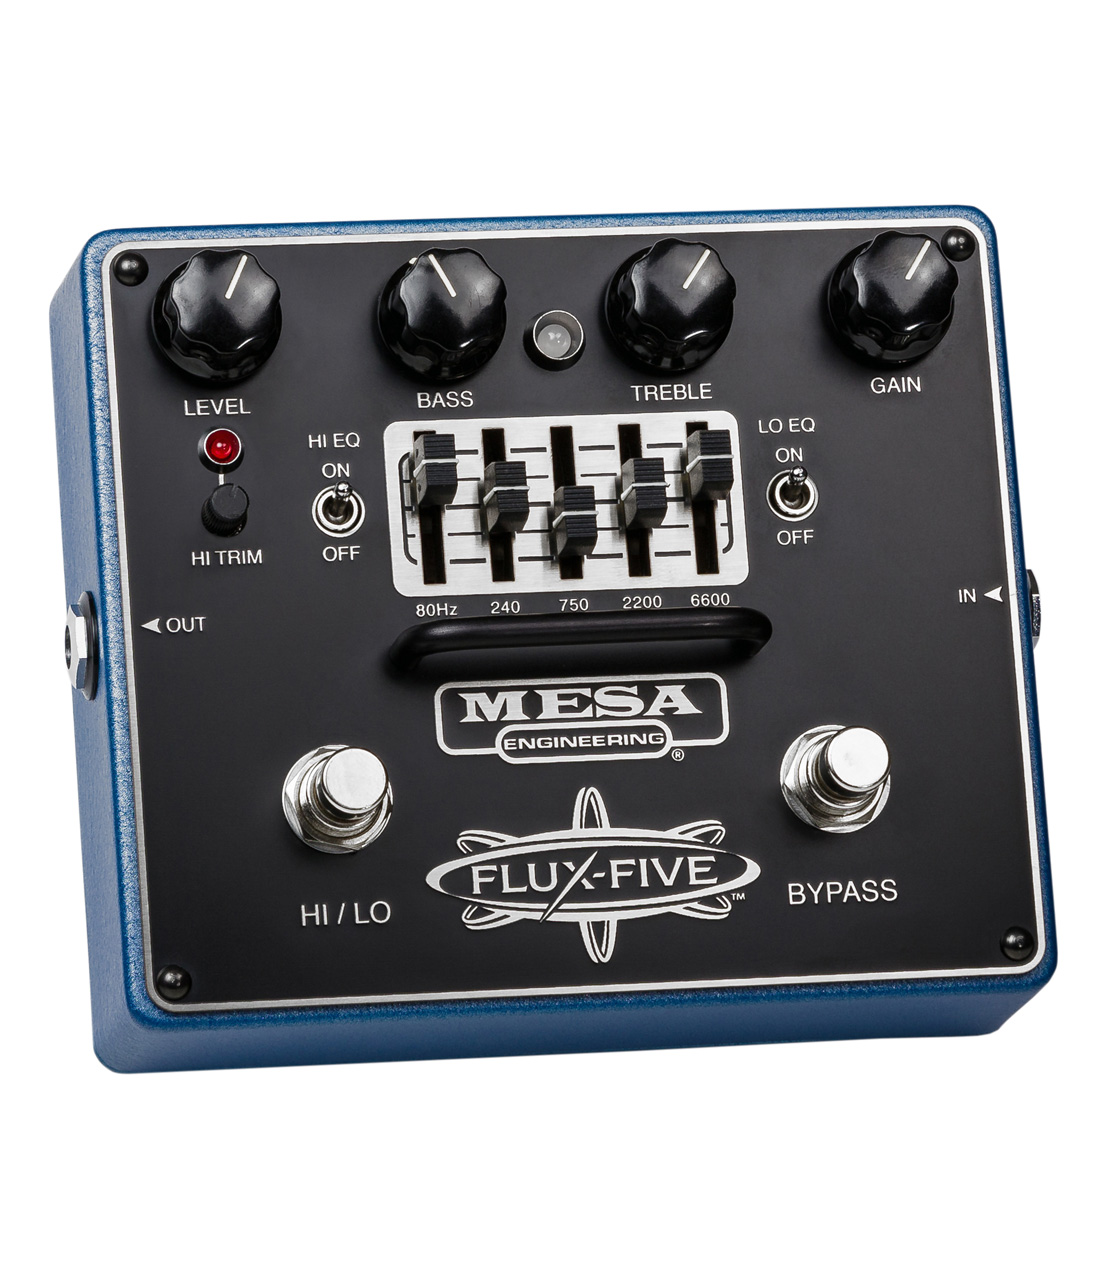 Melody House Musical Instruments Store - Flux Five Overdrive Pedal